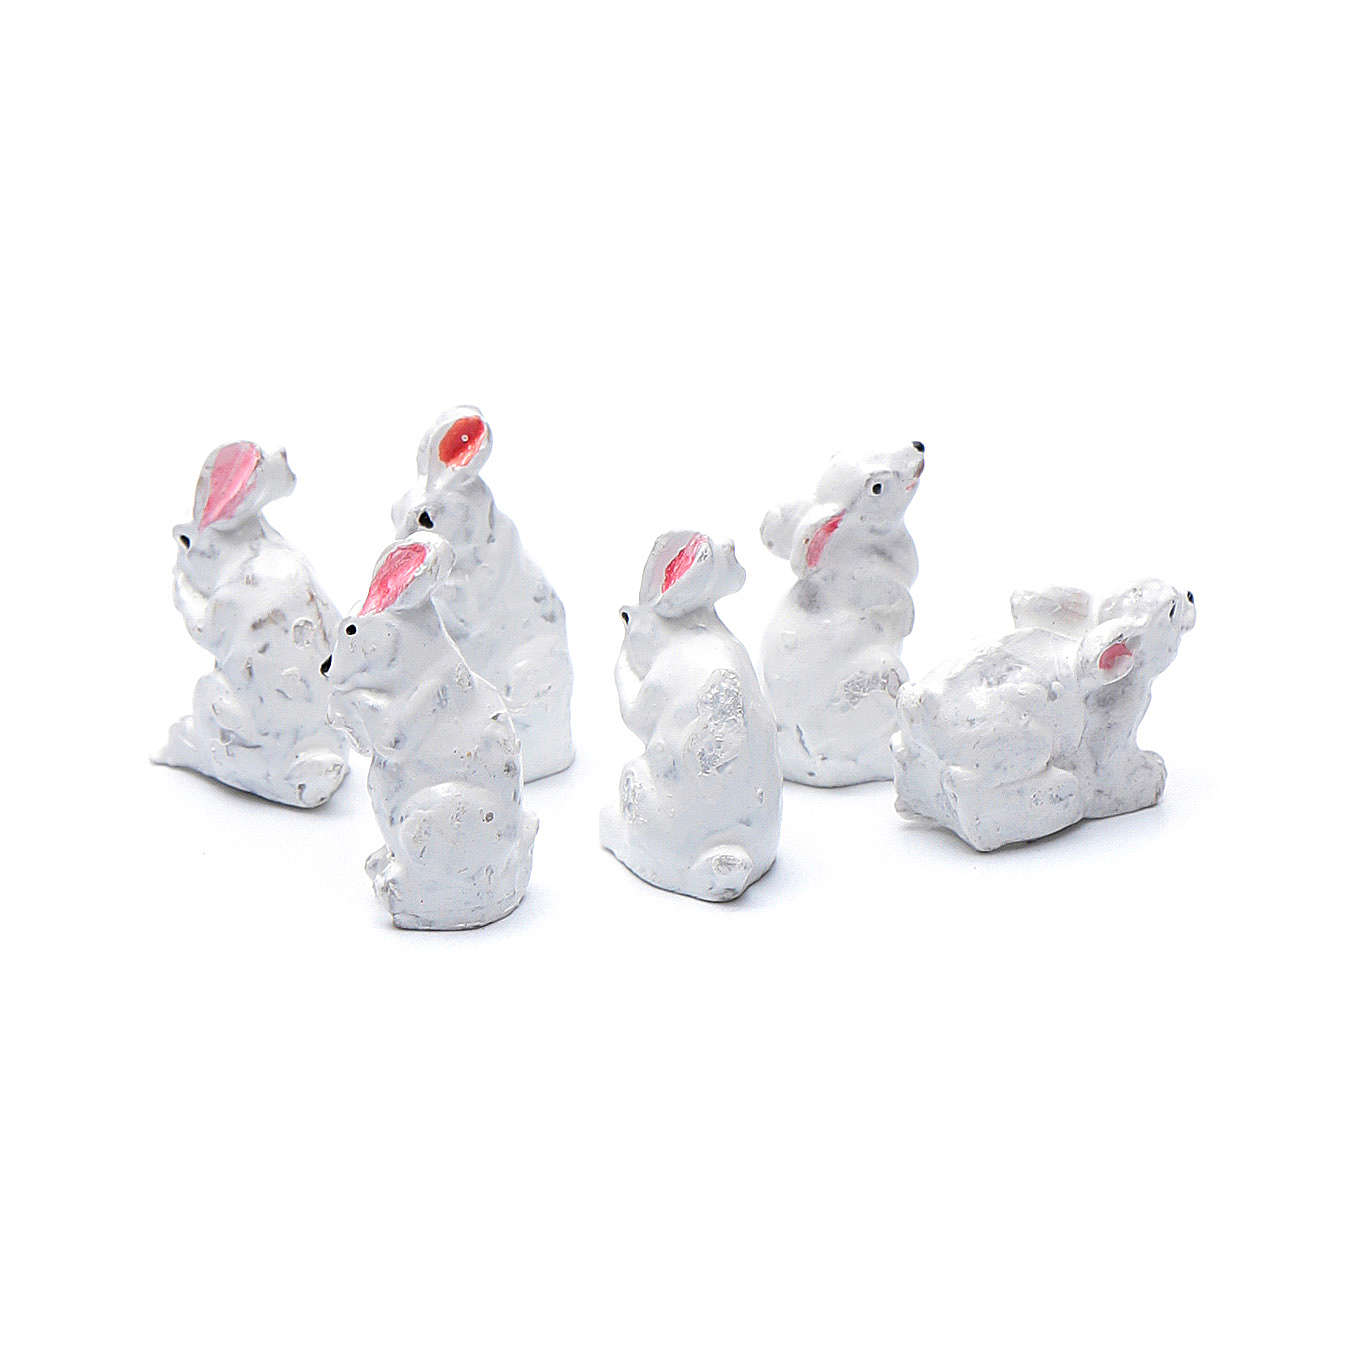 Rabbits in resin measuring 2 cm, 6 figurines 3